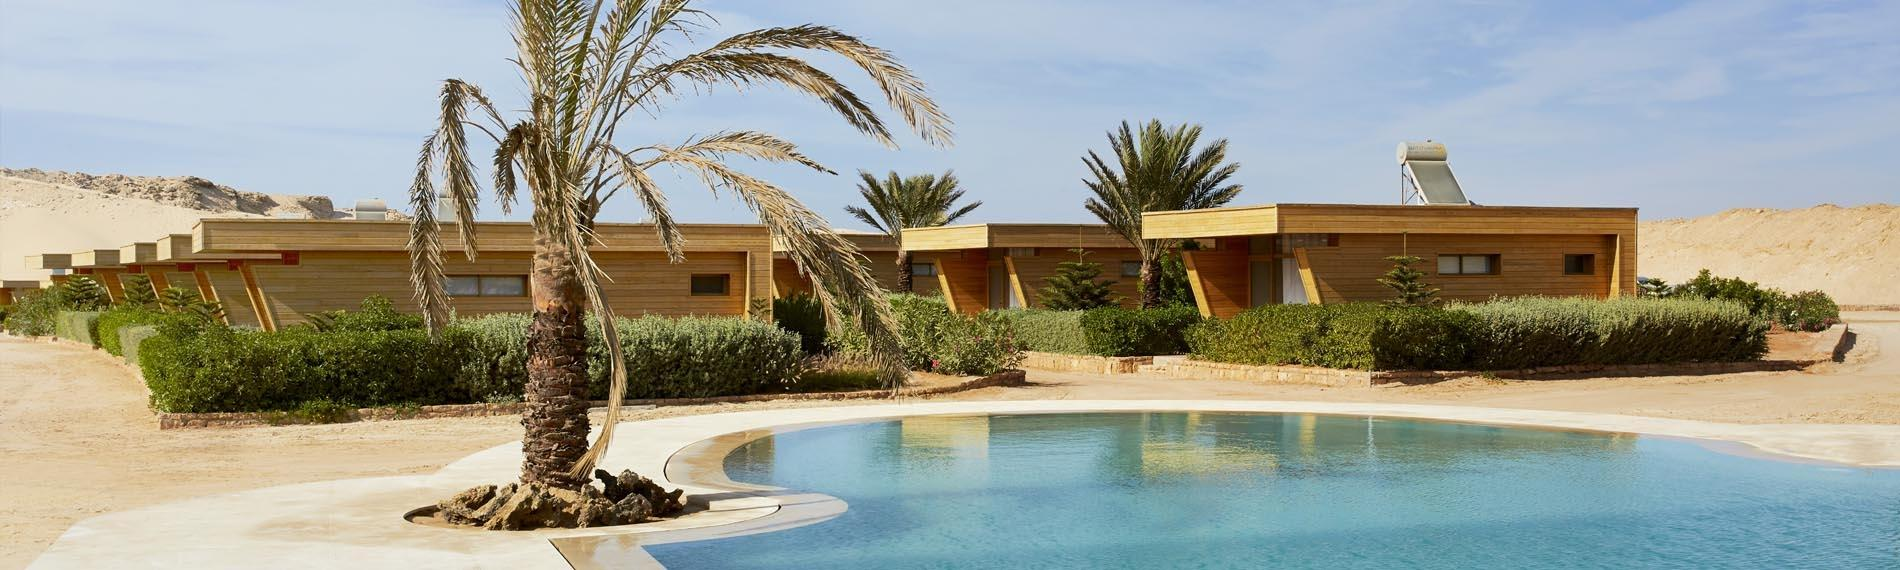 Dakhla Club Poolbereich